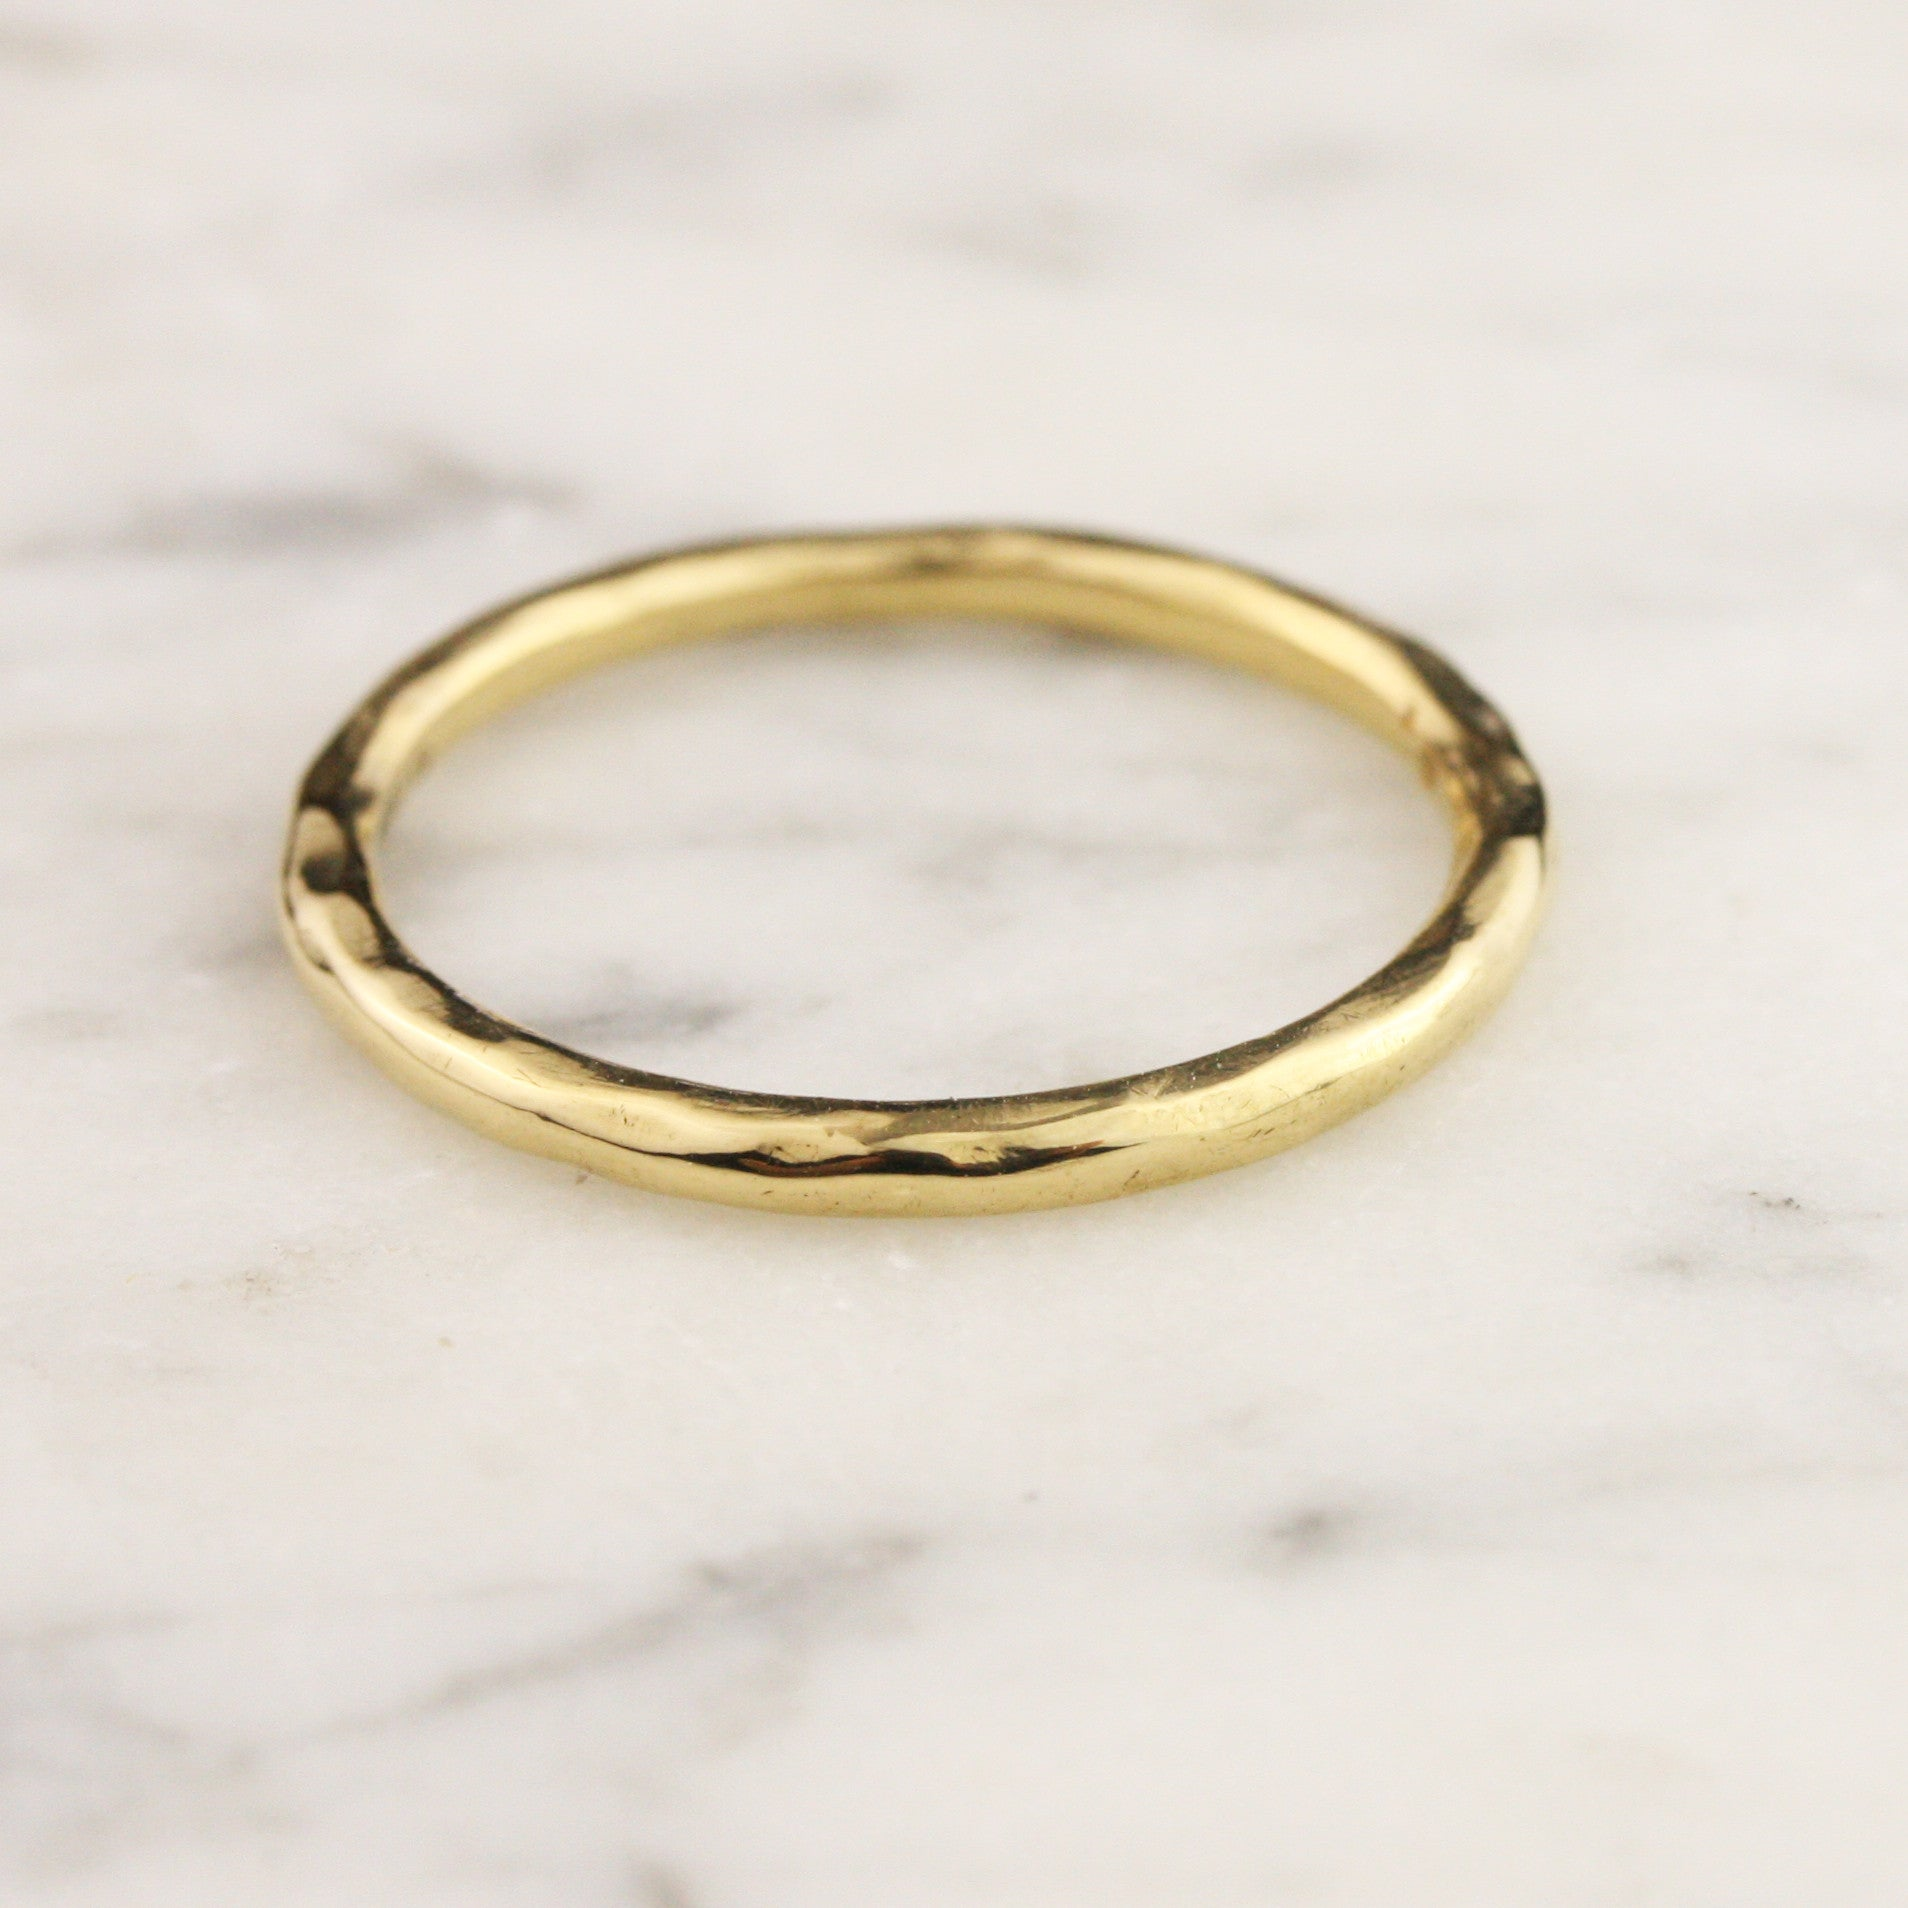 1.8mm Hammered Full Round Stacking Ring - 24k – HoardJewelry